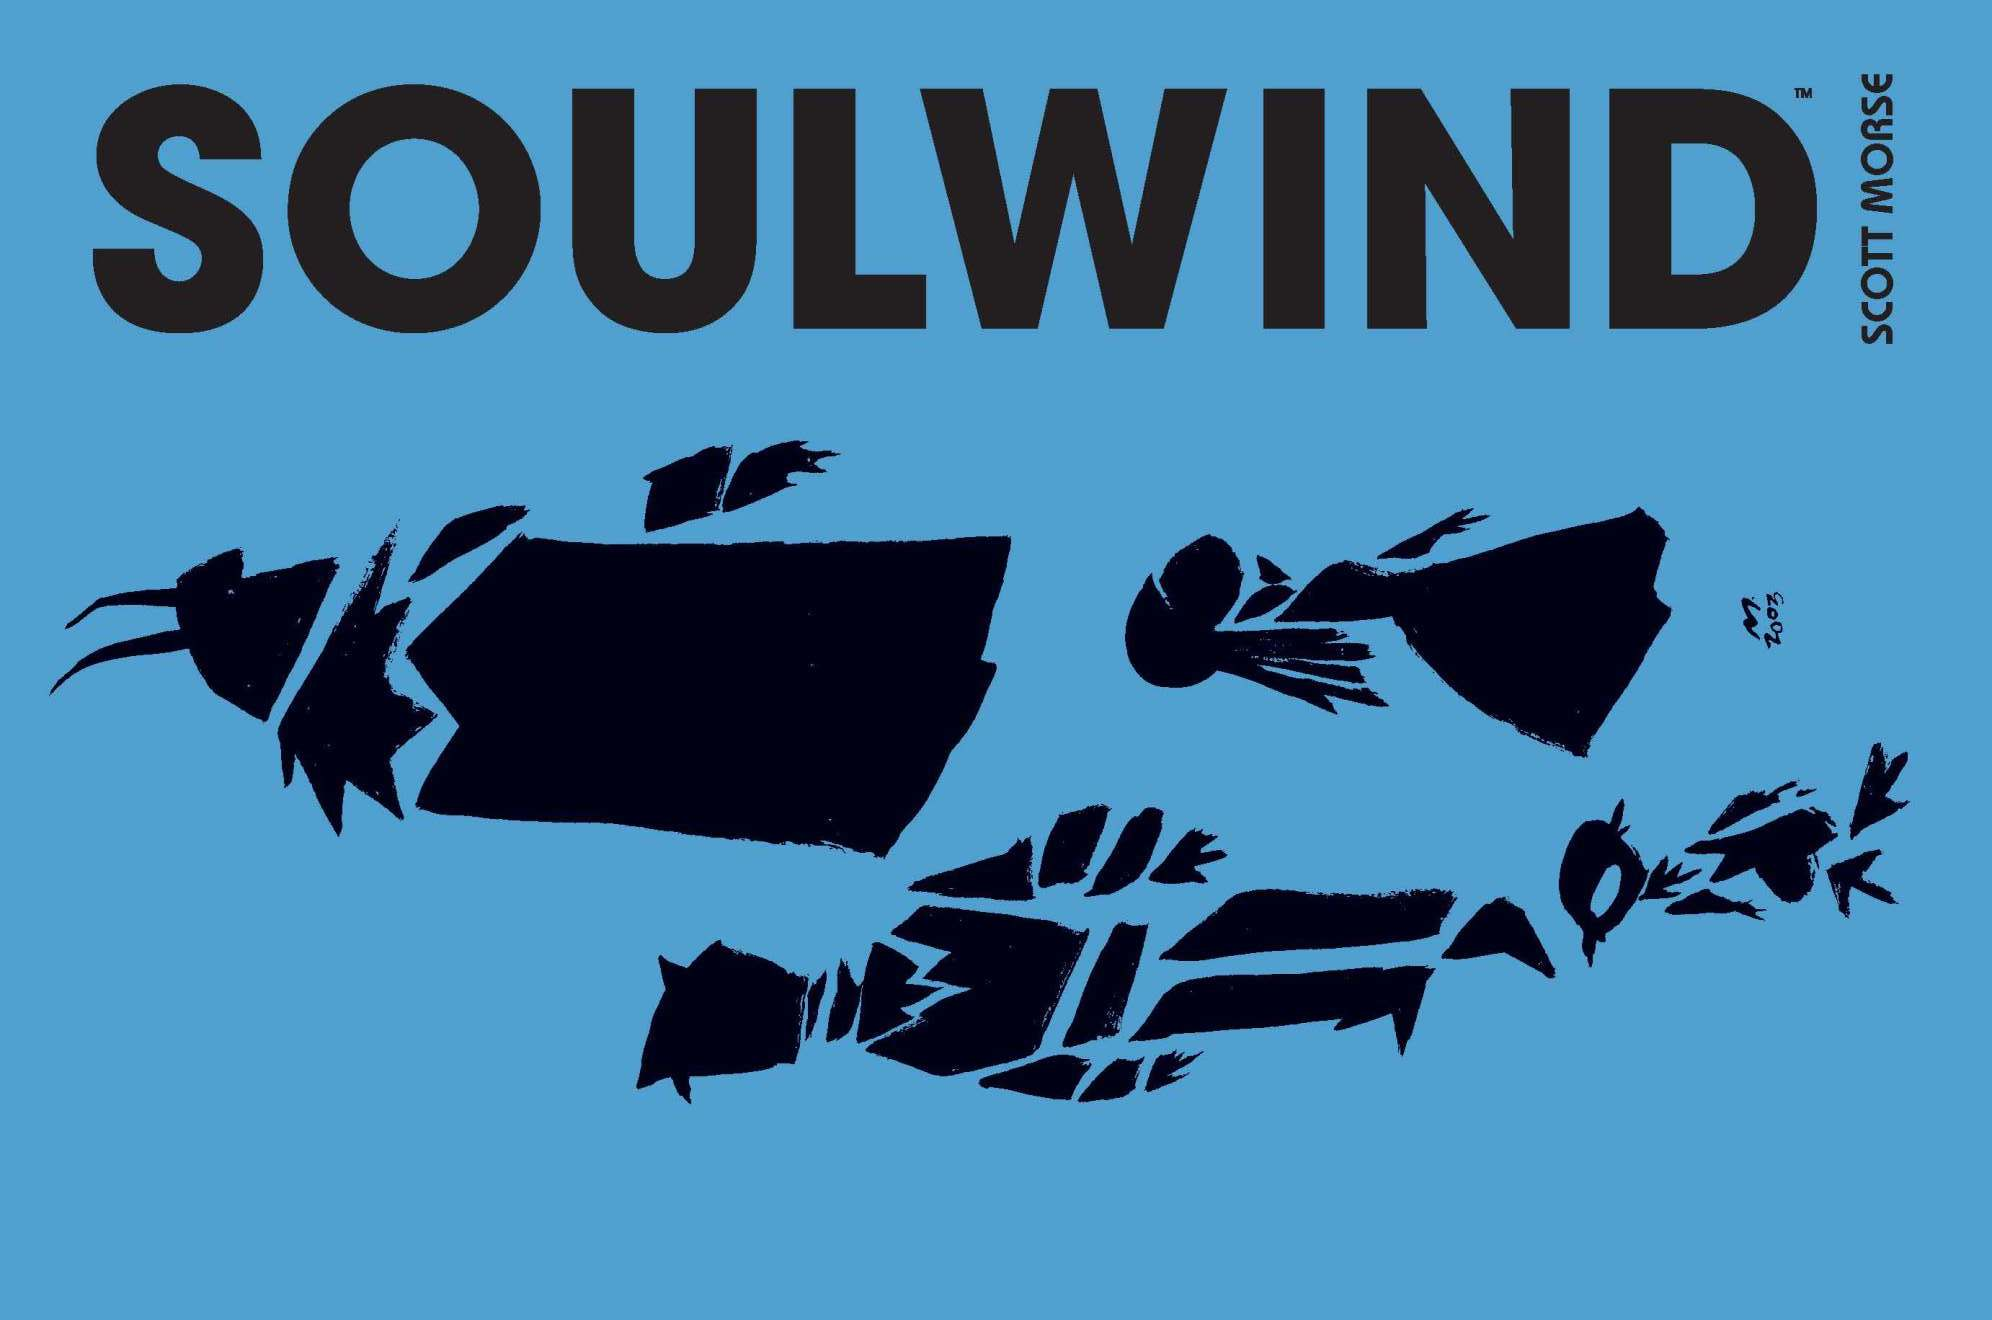 Do yourself a favor and pick up 'Soulwind' in hardcover